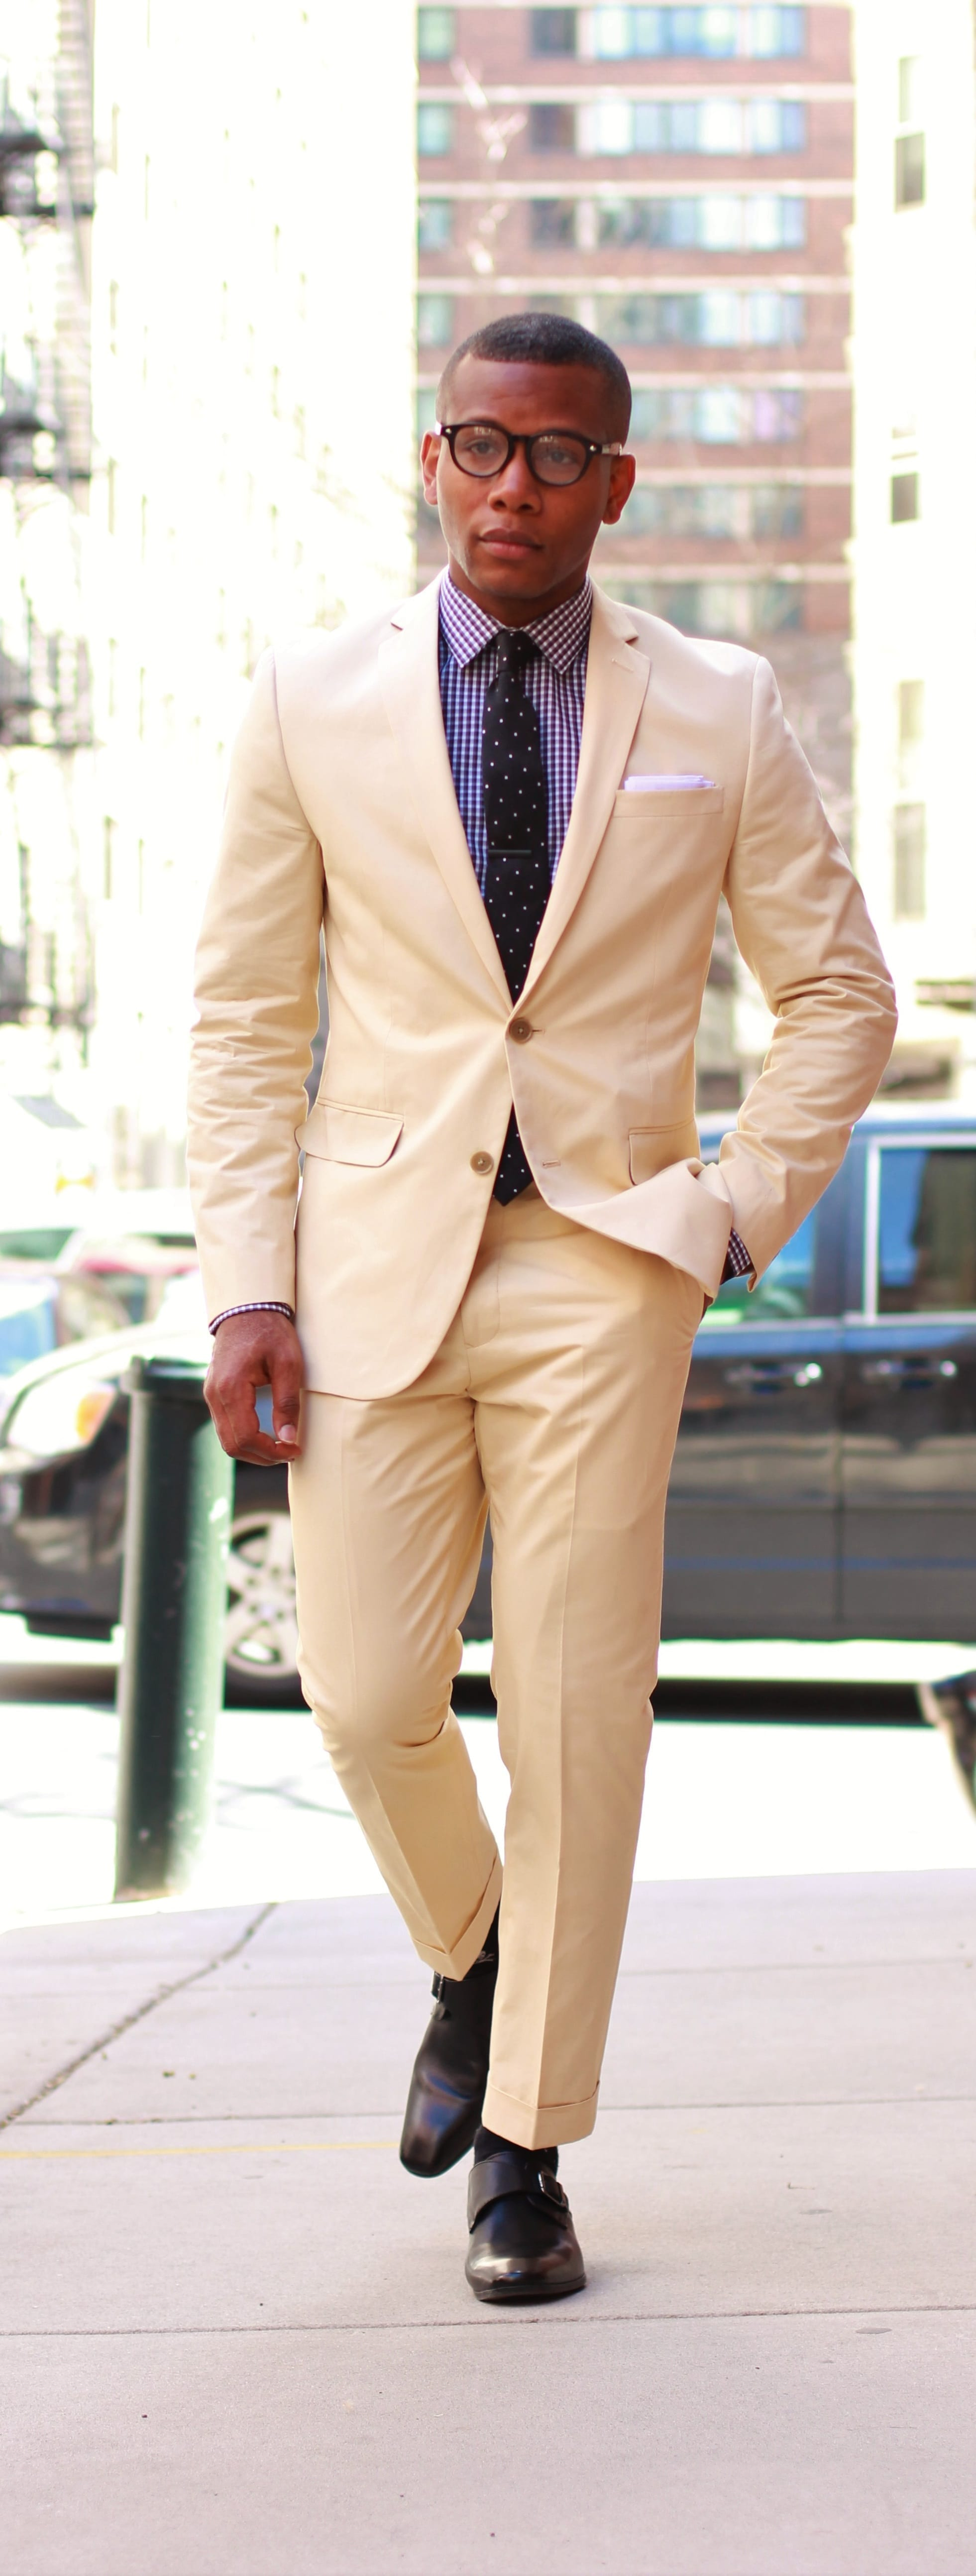 Stylish Khaki Suit Outfit Ideas For Guys